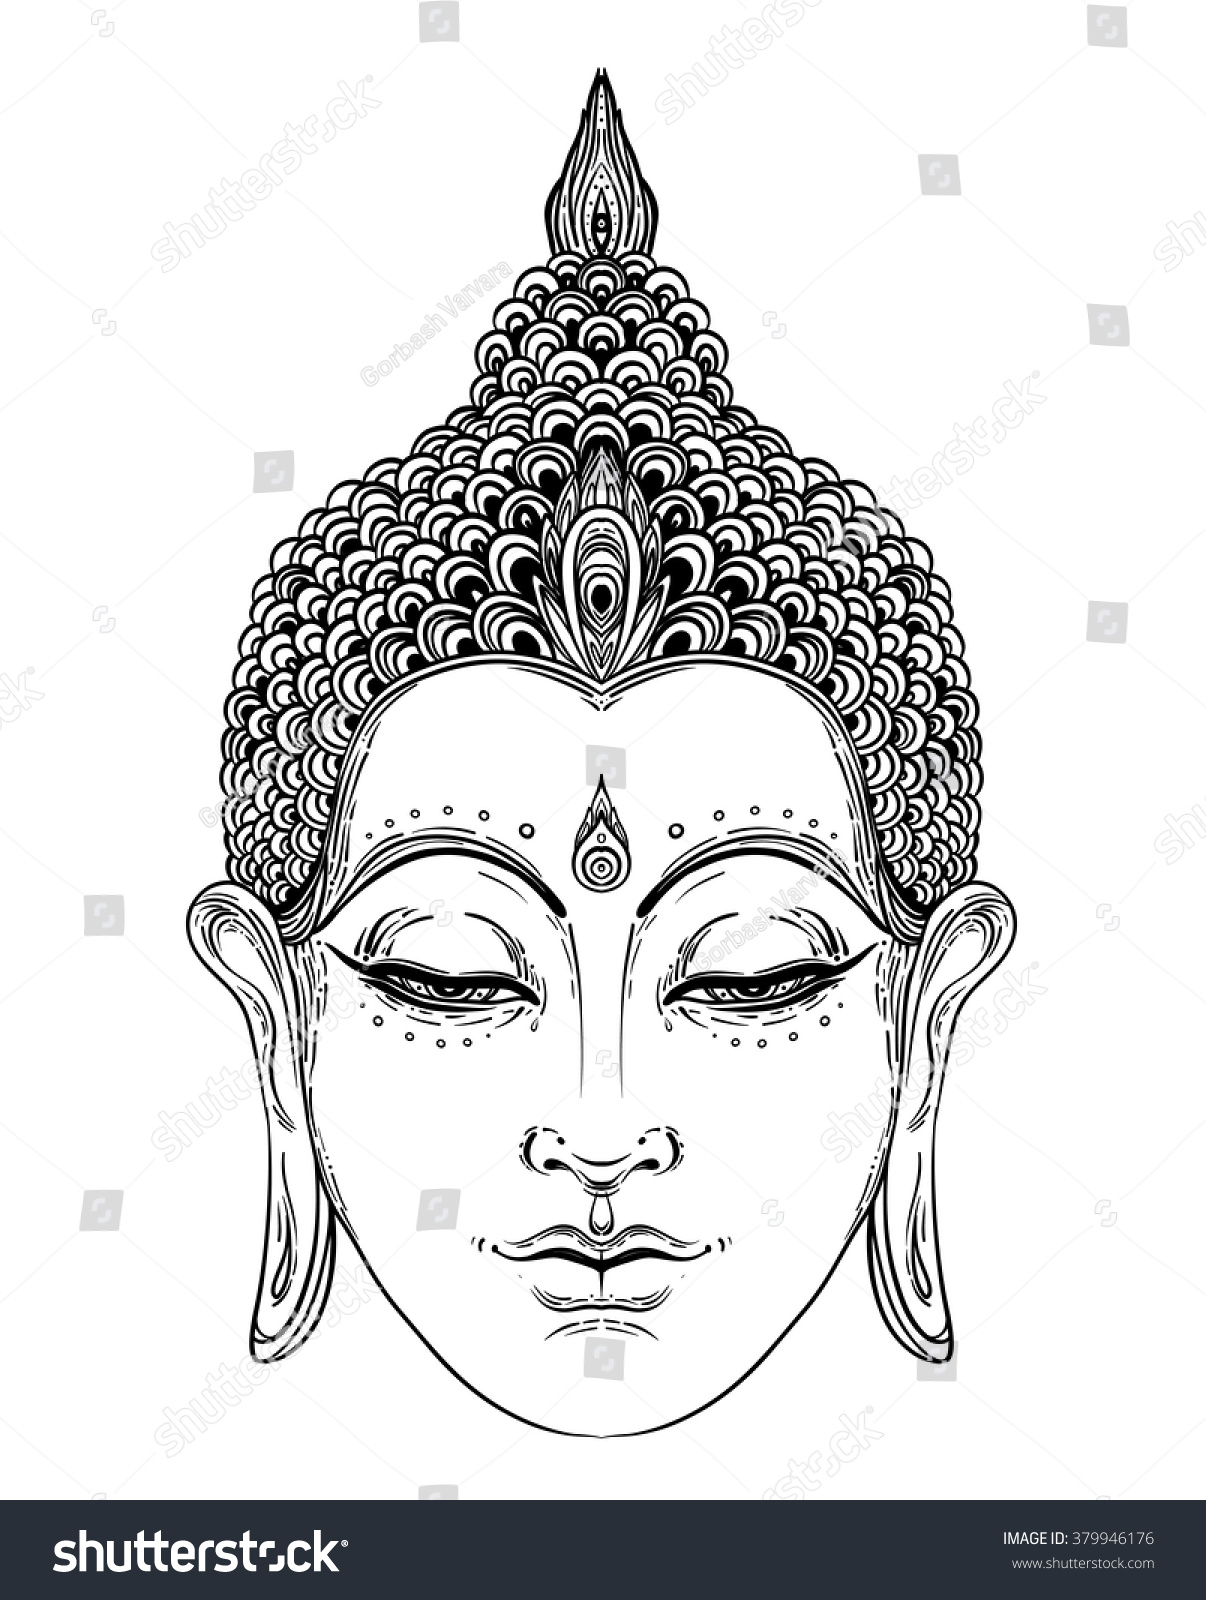 hindu and buddhist methods of meditation The ancient powerful practices of hindu meditation by chad foreman / tuesday, 05 may 2015 / published in meditation mantras are used in hindu traditions, buddhist traditions so there are many other techniques but the ones above are the most well-known.